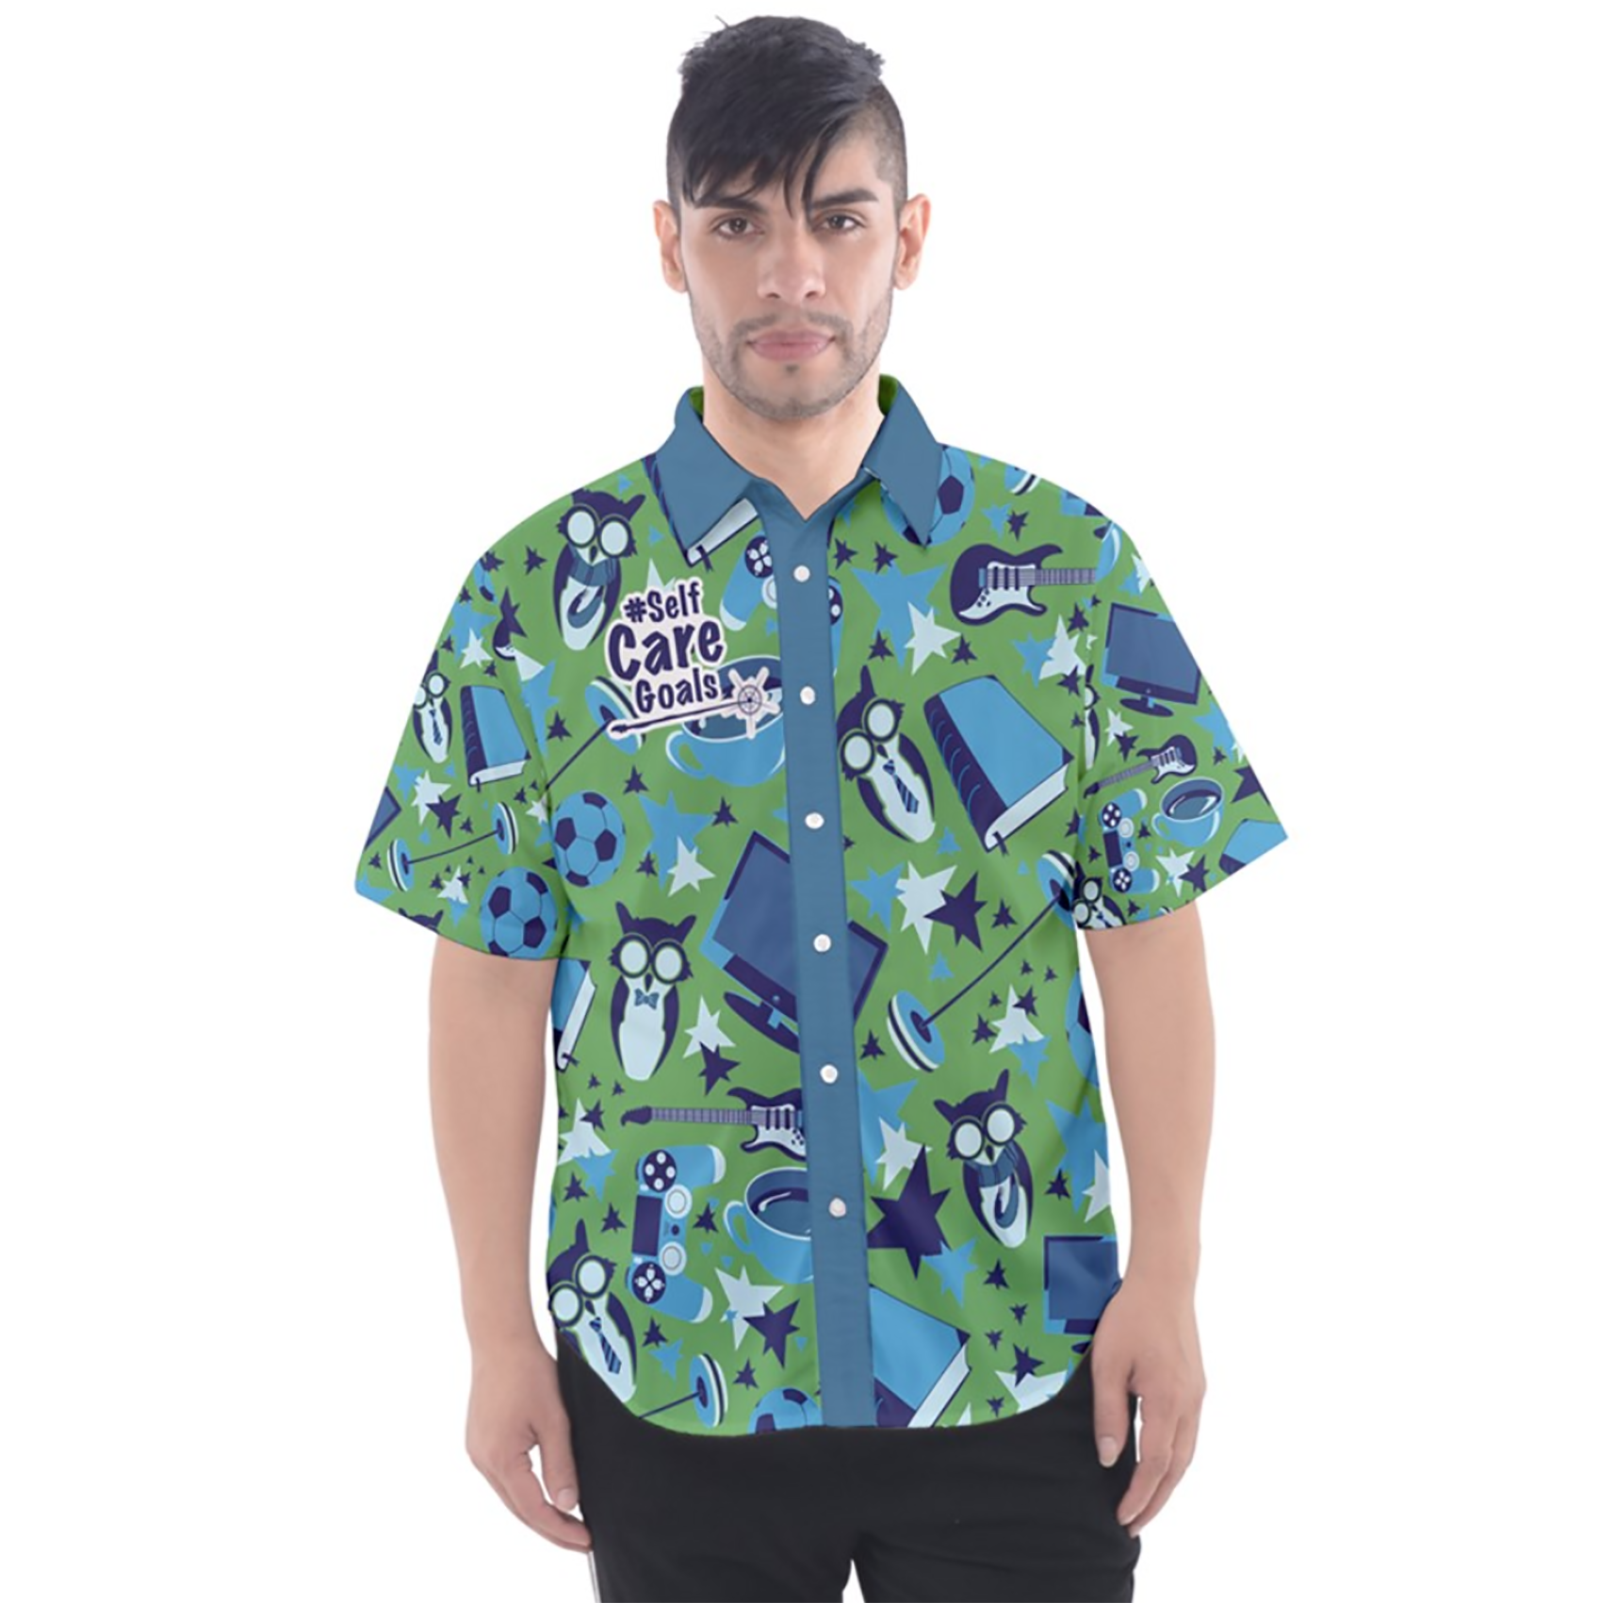 Self-Care Men's Patterned Button Up Short Sleeve Shirt (Green)